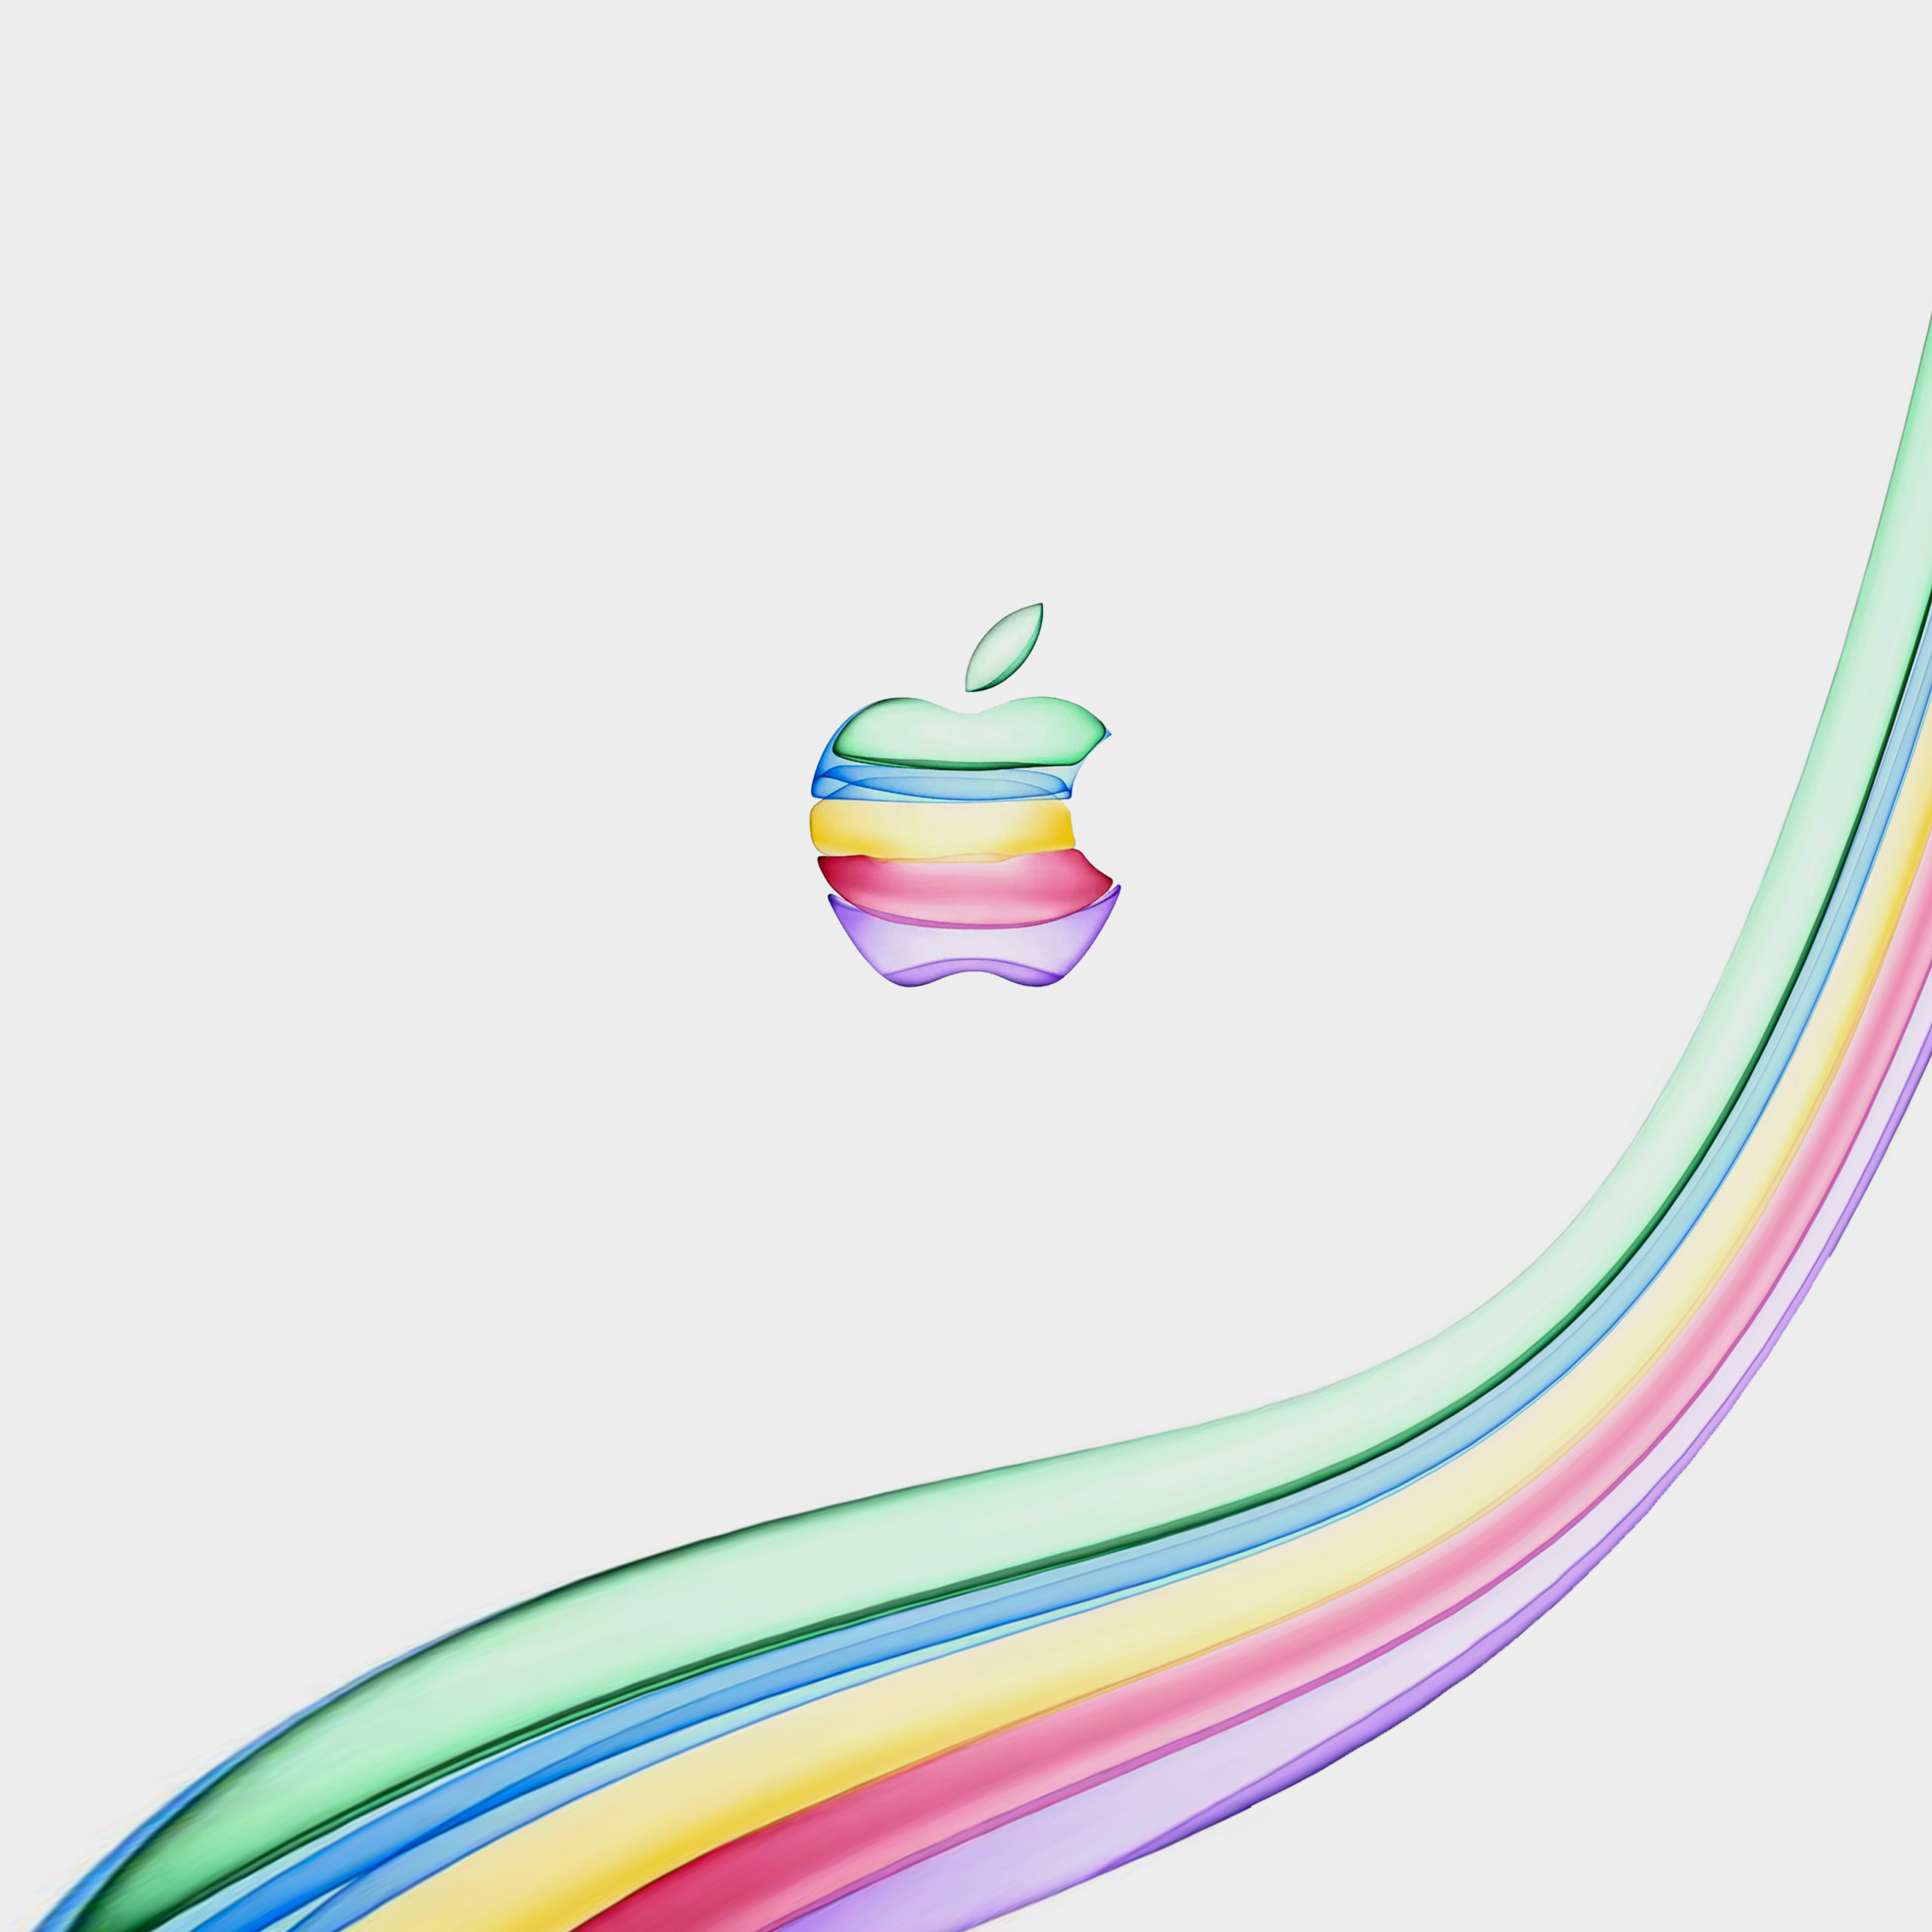 by iphone11 keynote wallpaper